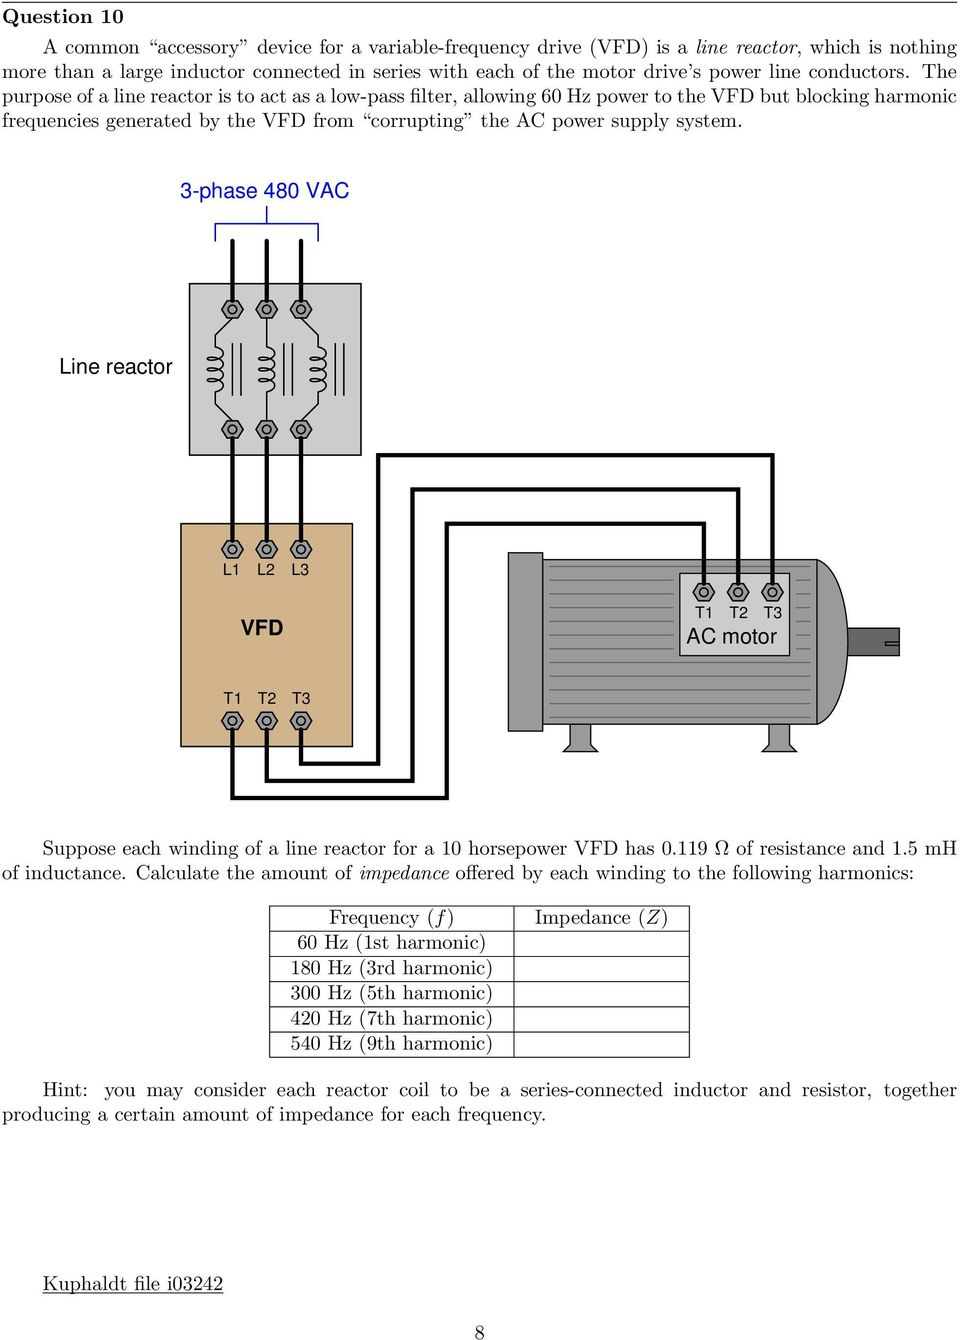 The purpose of a line reactor is to act as a low-pass filter, allowing 60 Hz power to the VFD but blocking harmonic frequencies generated by the VFD from corrupting the AC power supply system.